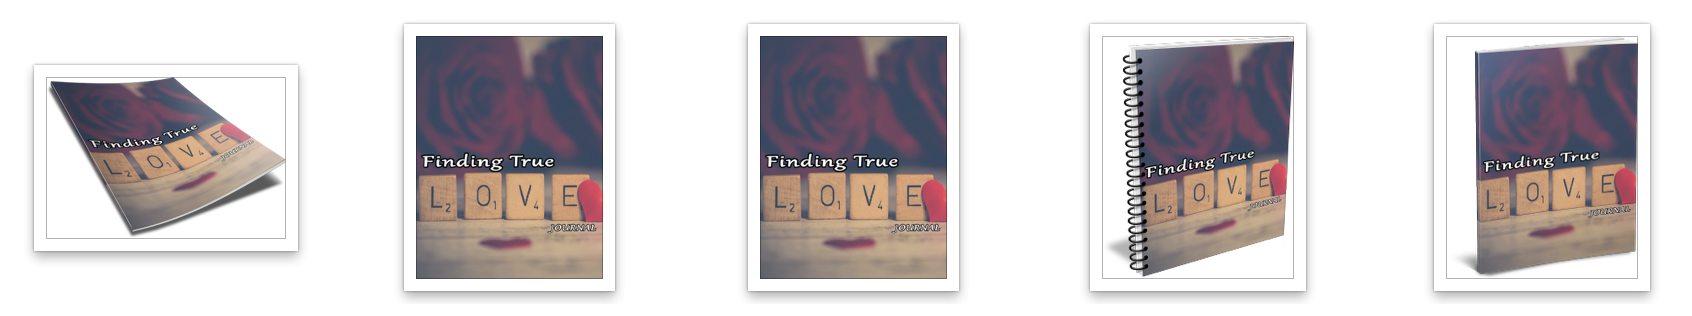 Finding True Love Ecovers